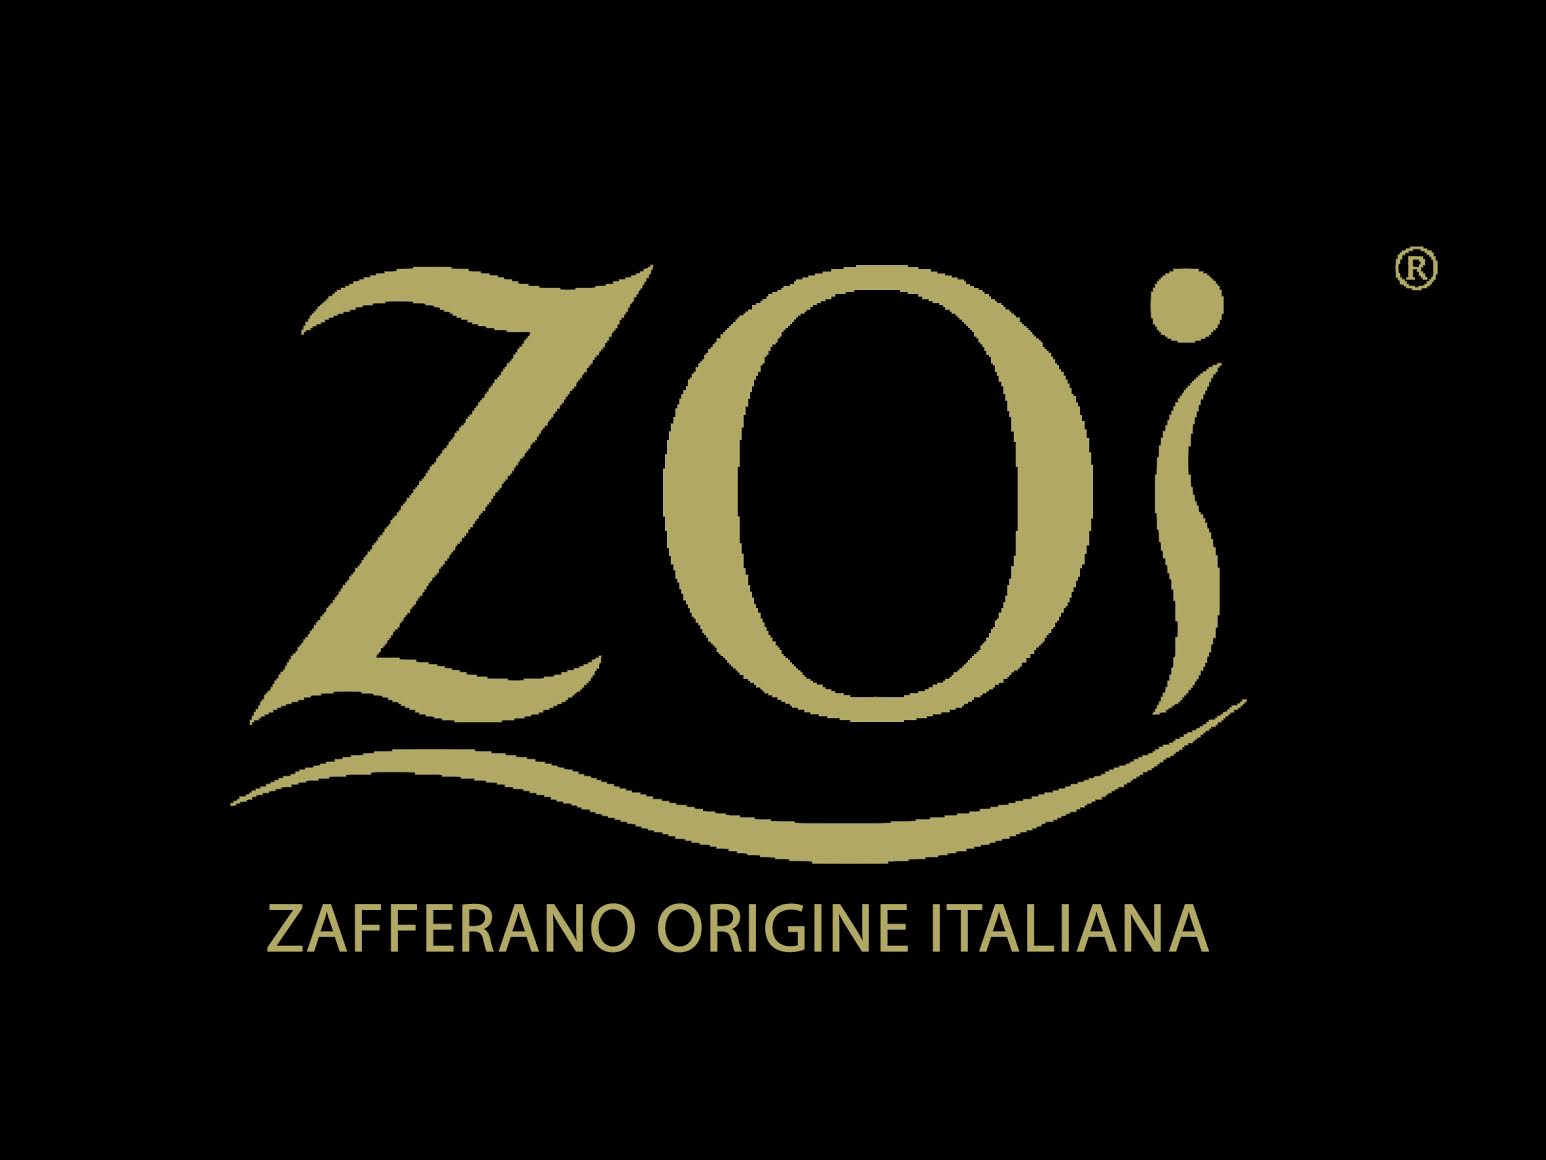 Zafferano Origine Italiana ZOI